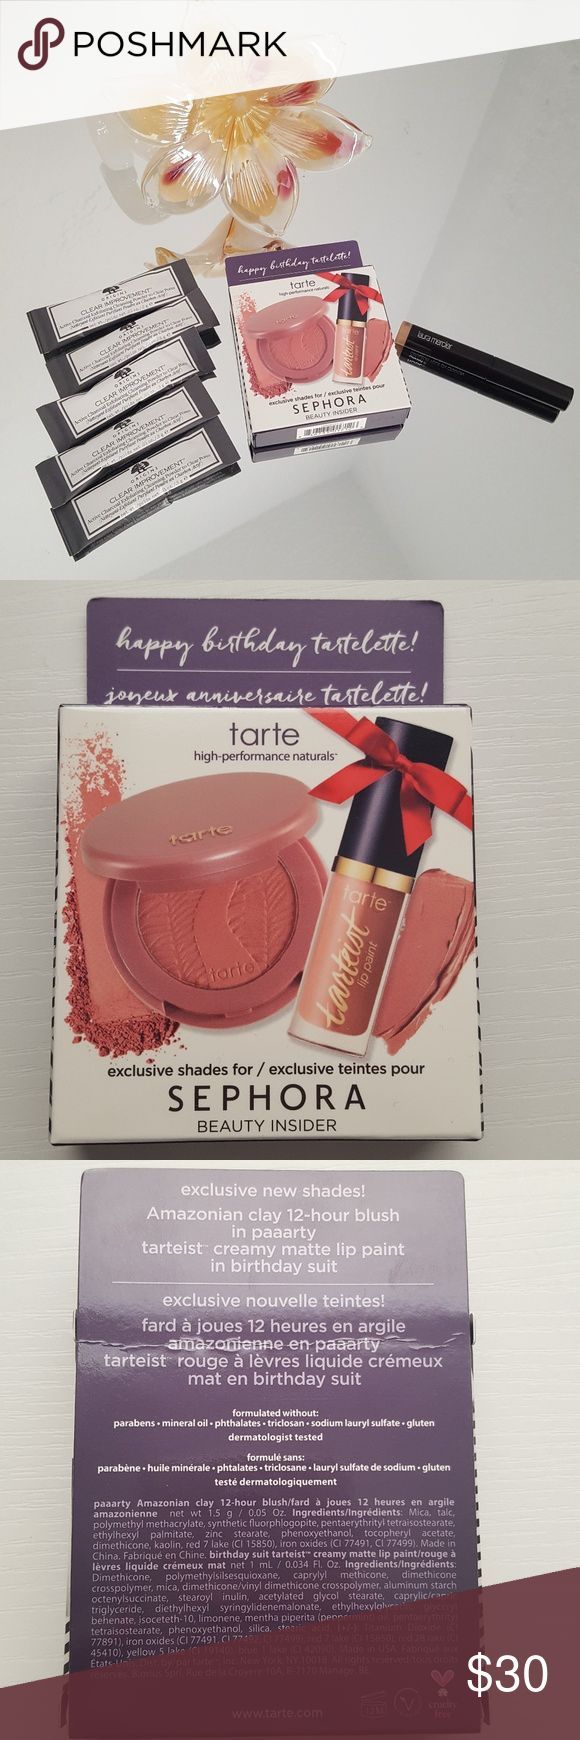 Sephora Deluxe Sample Lot Tarte Origins Mercier All items are new and unused.  Sephora Tarte Birthday Gift 2017 Birthday Suit Blush .05 oz and Lip .034 oz.    Laura Mercier Caviar Stick Eye Crayon in Rose Gold .03 oz   Origins Active Charcoal Exfoliating Cleansing Powder x 5 .01 0z each Sephora Makeup